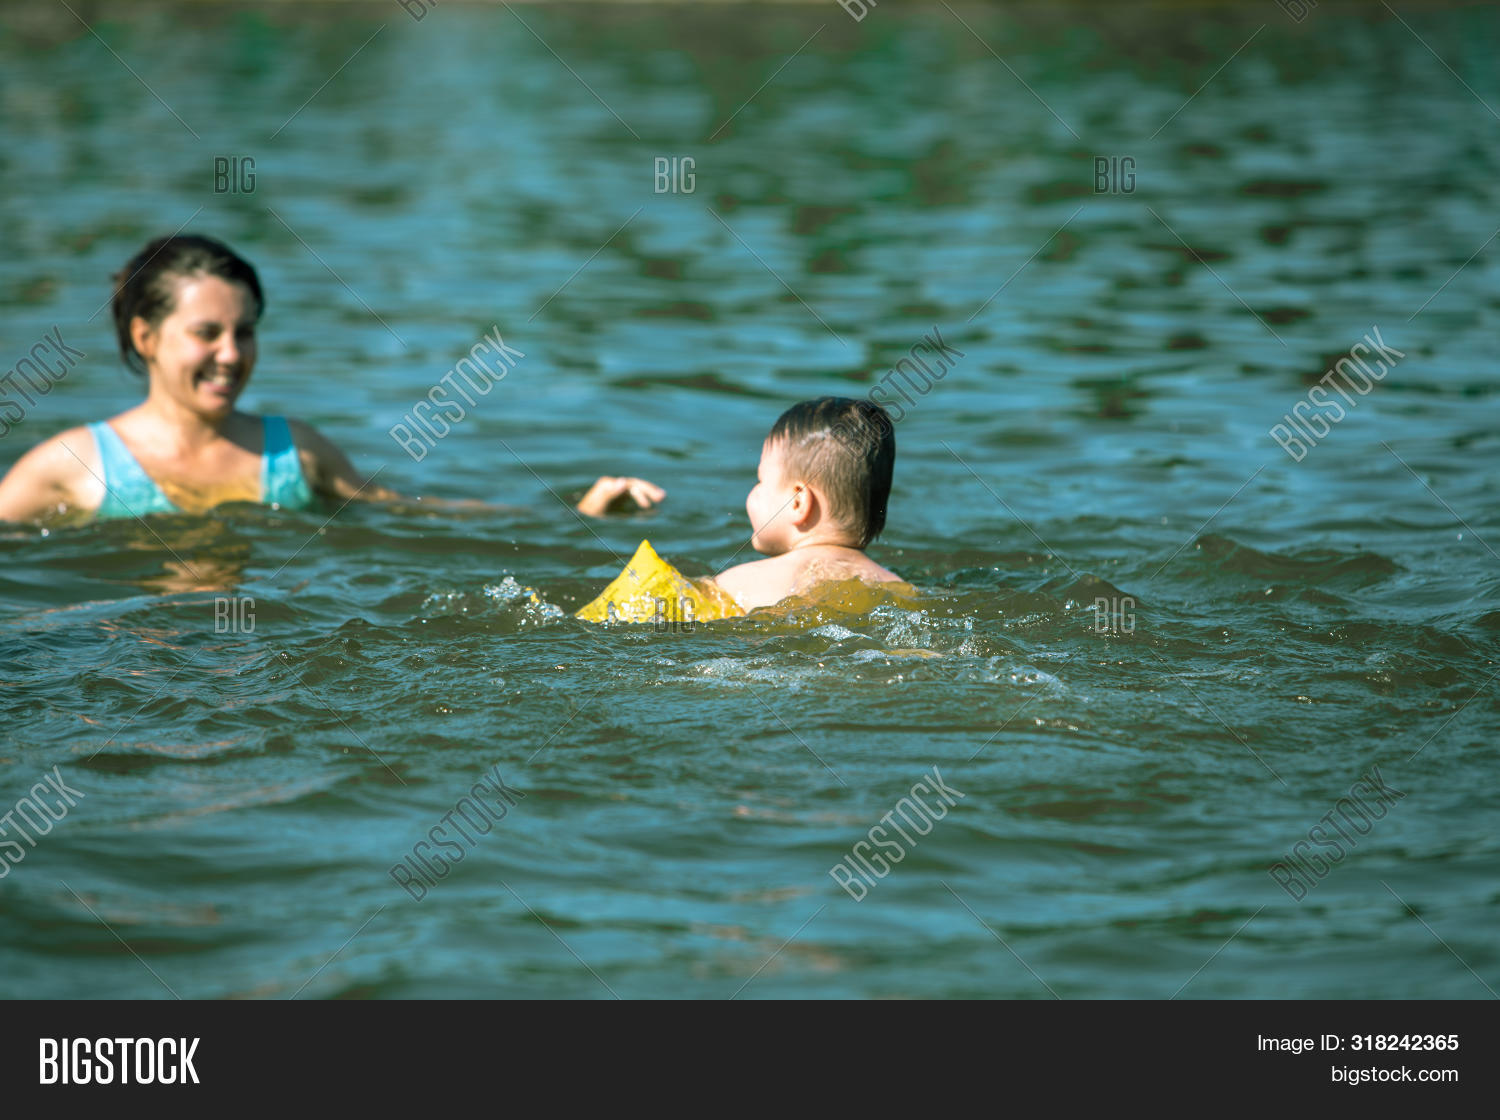 action,active,activity,aids,armbands,arms,bands,beach,boy,caucasians,cheerful,child,children,emotions,family,females,float,fun,happiness,holidays,inflatable,kid,lake,leisure,mom,mother,pic,picture,play,safe,sea,smiling,son,summer,support,swim,swimming,teaching,toddler,tourism,travel,vacation,water